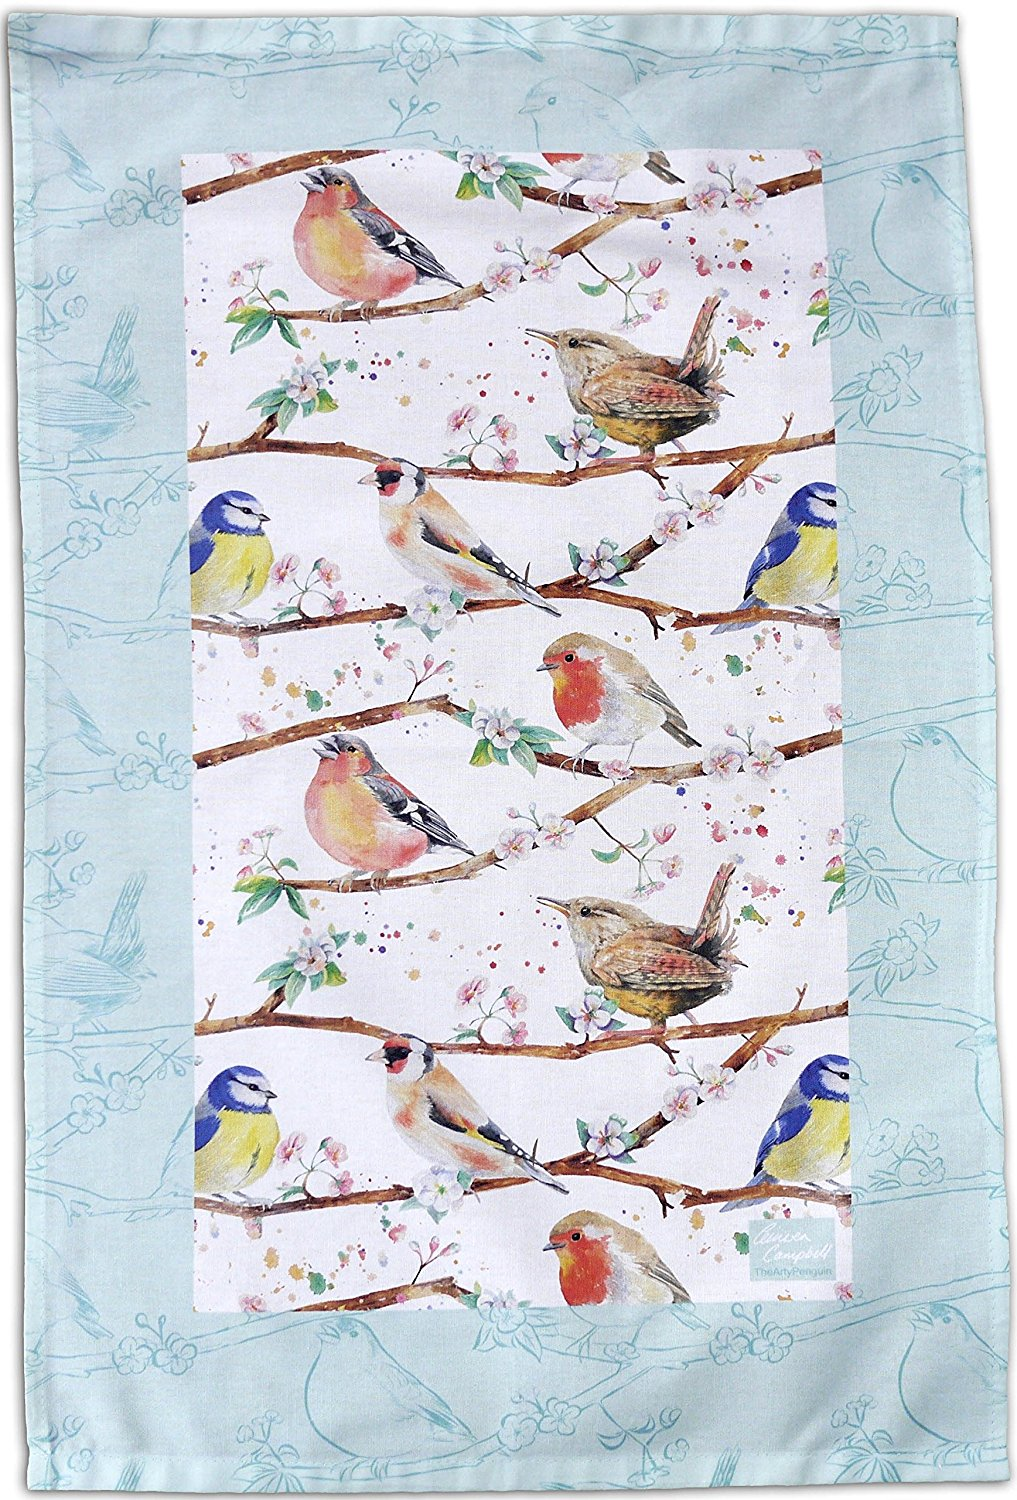 Garden birds bird  robin, wrens, chaffinch, blue tits, tea towel Ceinwen Campbell The arty Penguin